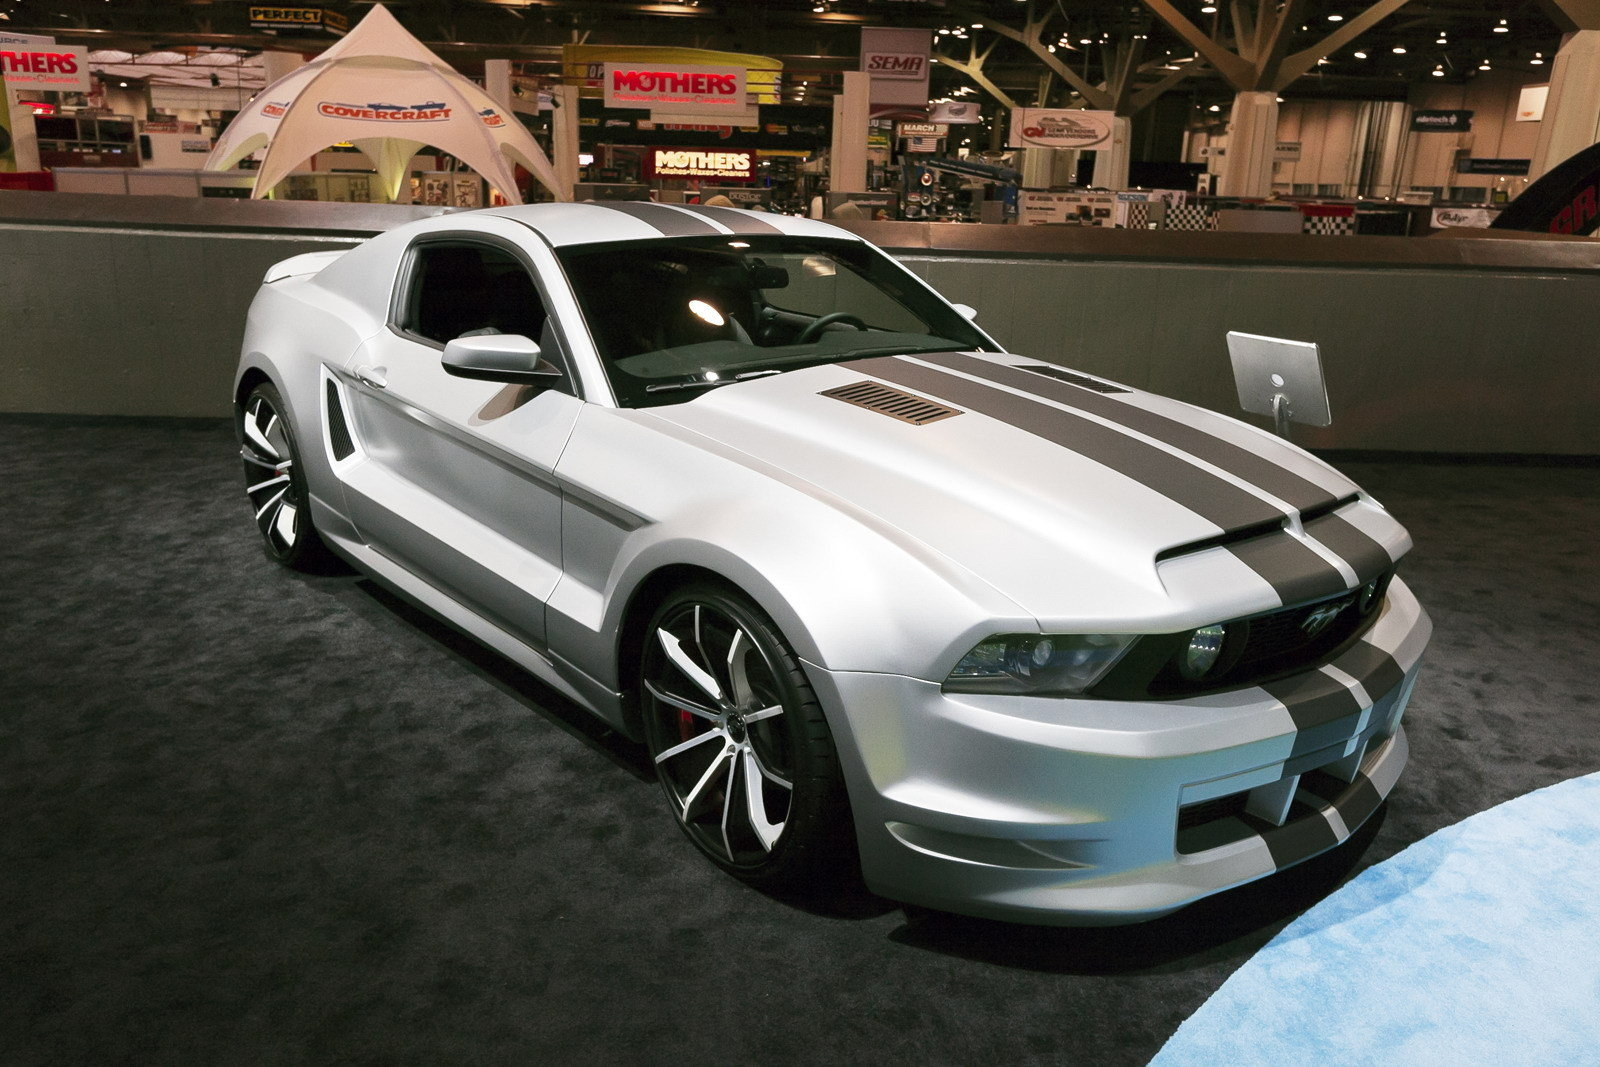 2012 ford mustang 5 0 gt by forgiato wheels picture 424443 car review top speed. Black Bedroom Furniture Sets. Home Design Ideas